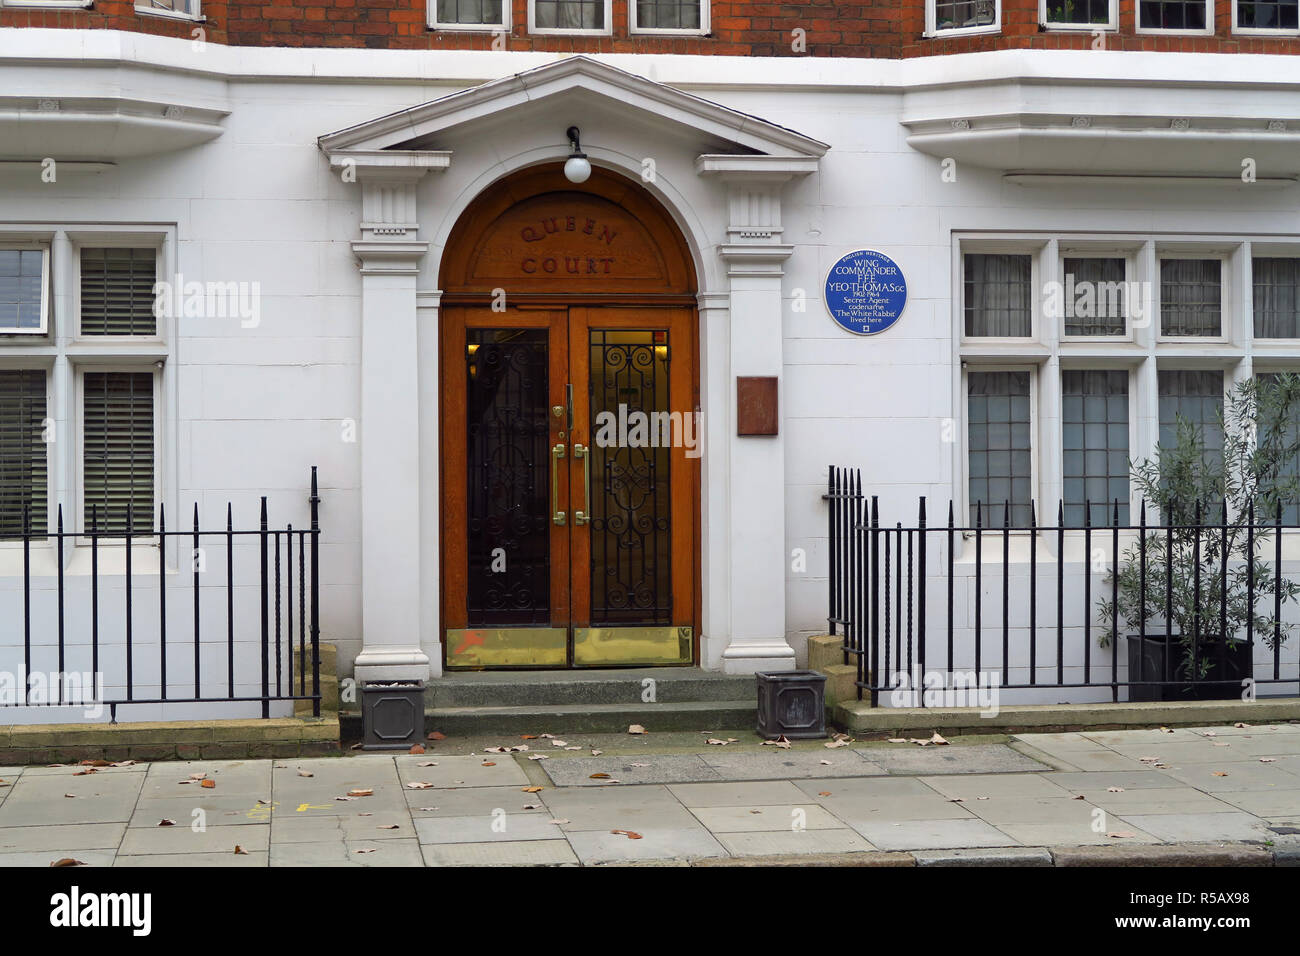 Blue plaque on building in Guilford Stteet, Bloomsbery, London in honour of Wing Cdr FFE 'Tommy' Yeo-Thomas, SOE officer during WW2 - Stock Image